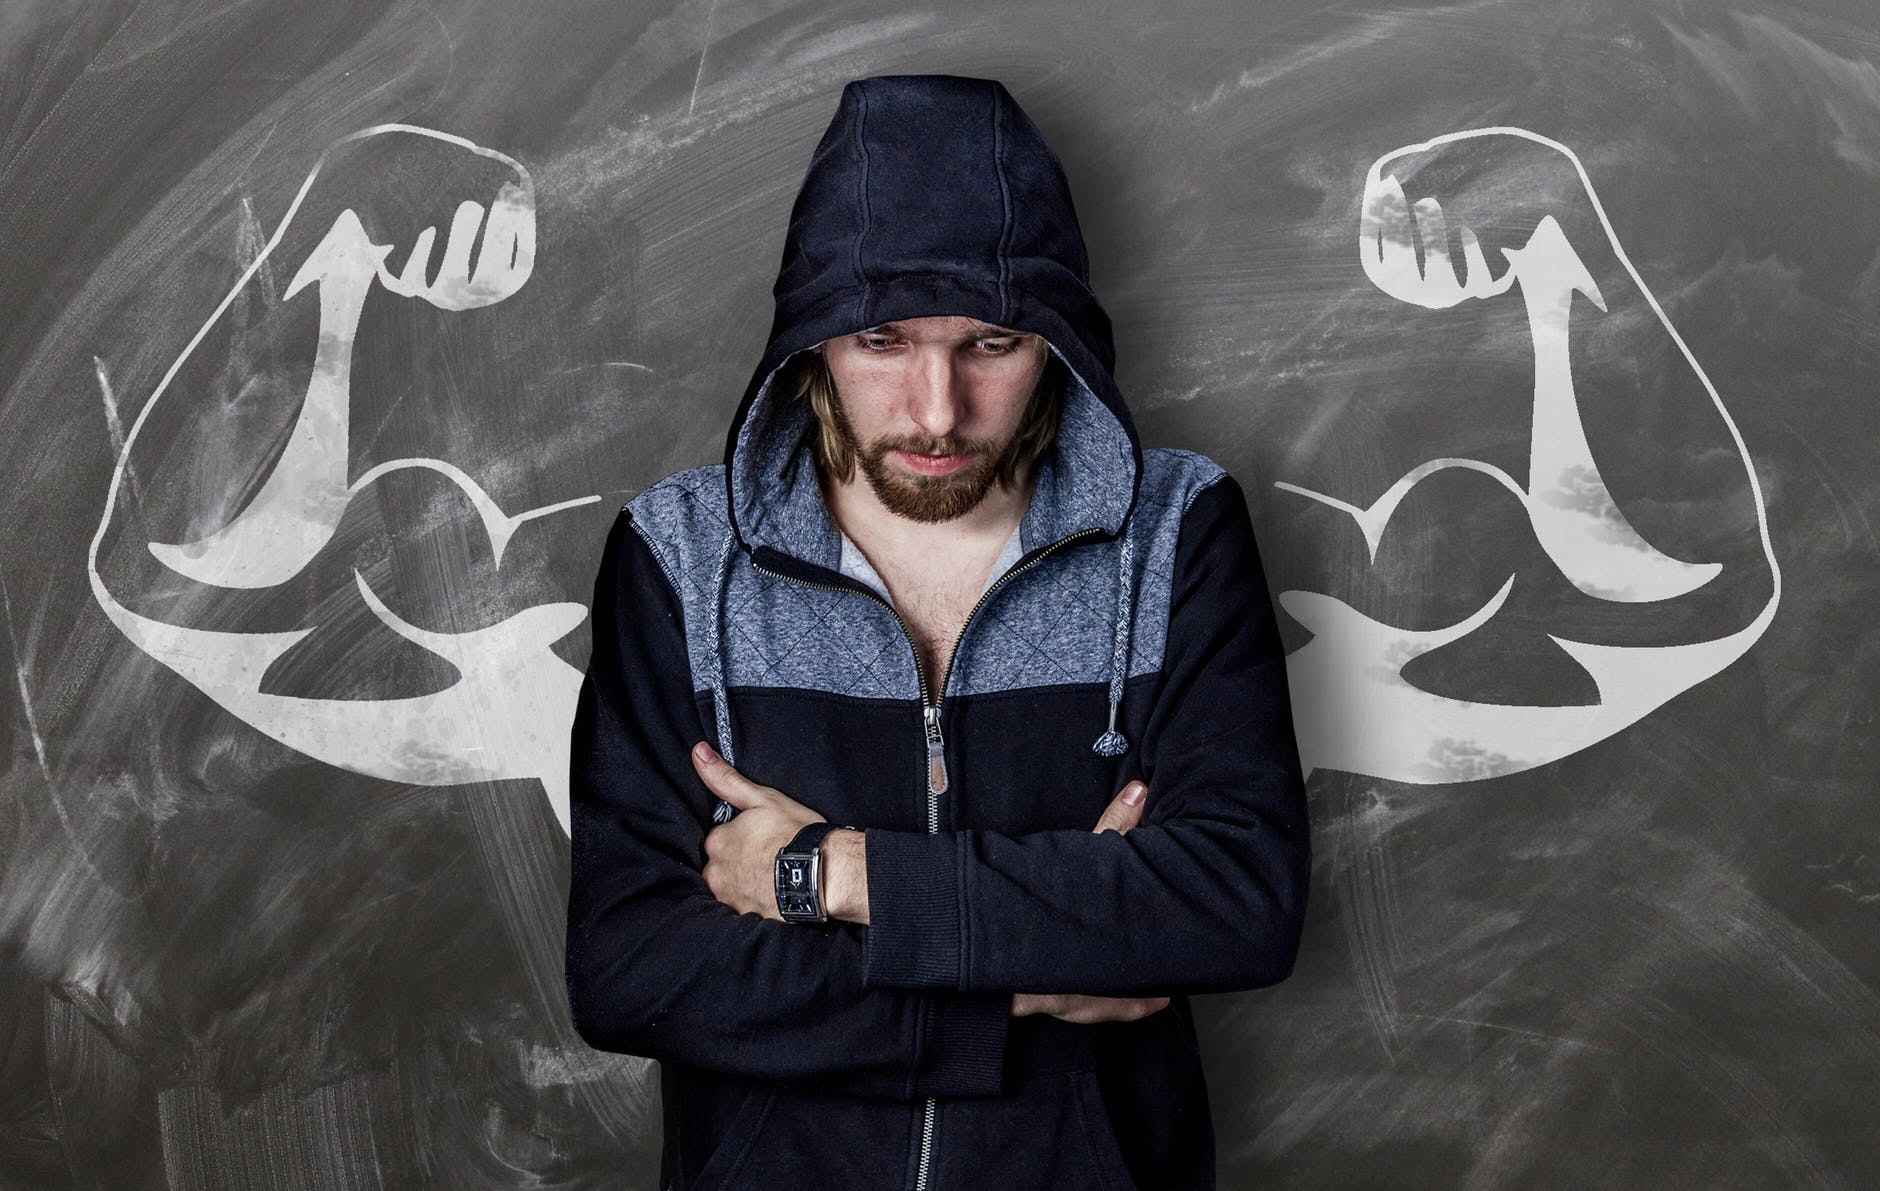 Disappointed man in hoody stands with muscular chalk arms either side